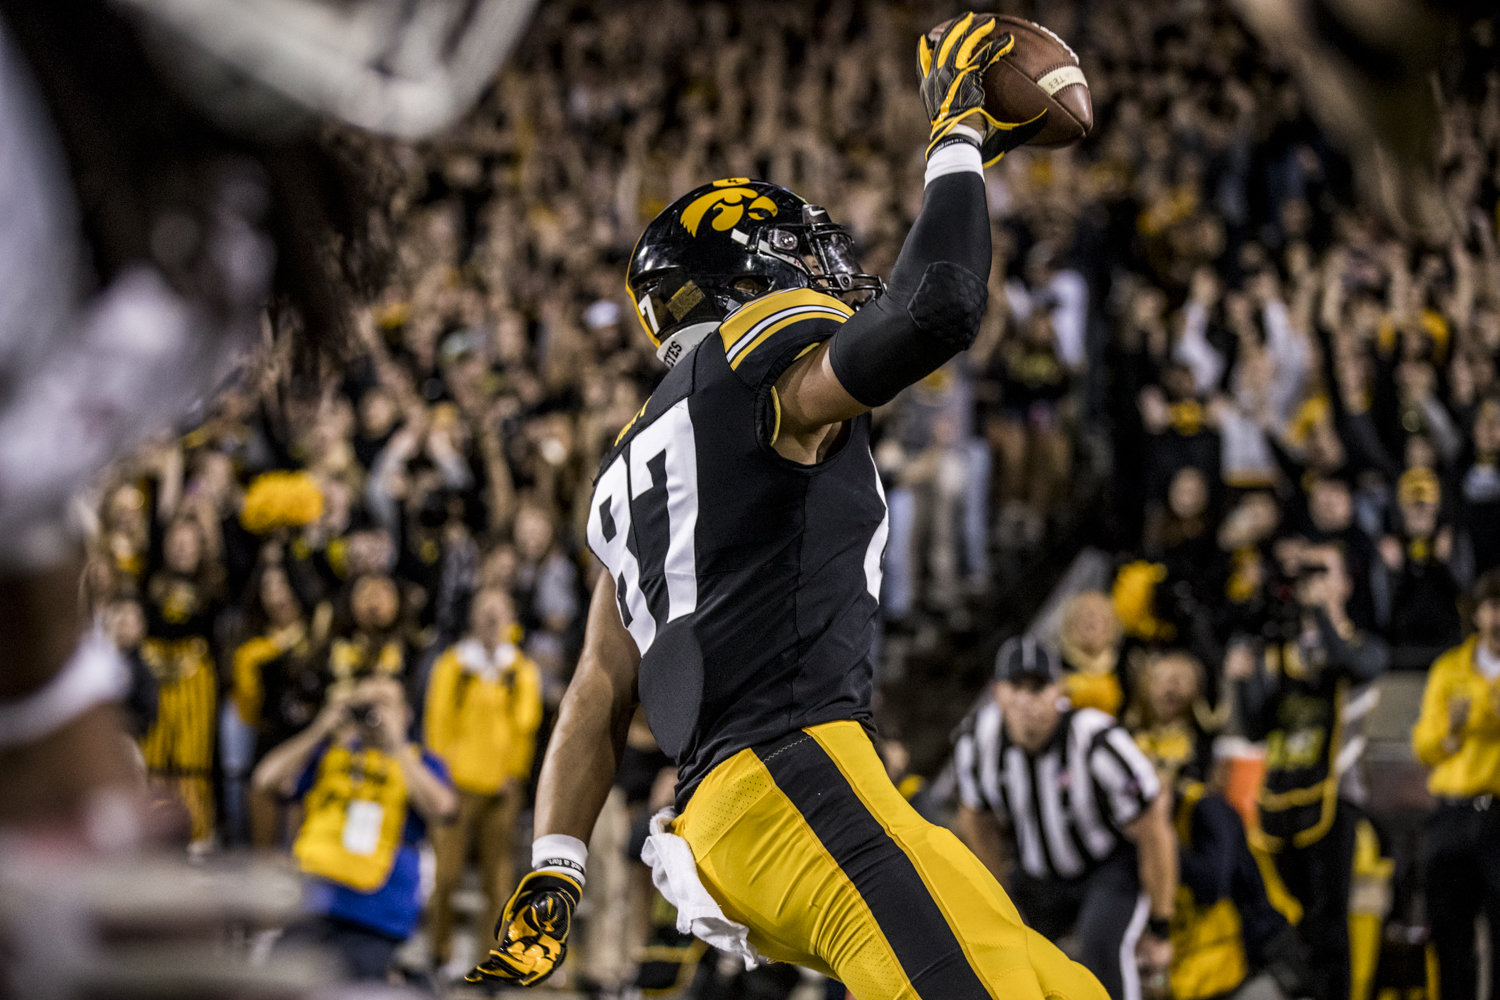 Iowa+tight+end+Noah+Fant+celebrates+scoring+a+touchdown+during+Iowa%27s+game+against+Wisconsin+at+Kinnick+Stadium+on+Saturday%2C+September+22%2C+2018.+The+Badgers+defeated+the+Hawkeyes+28-17.